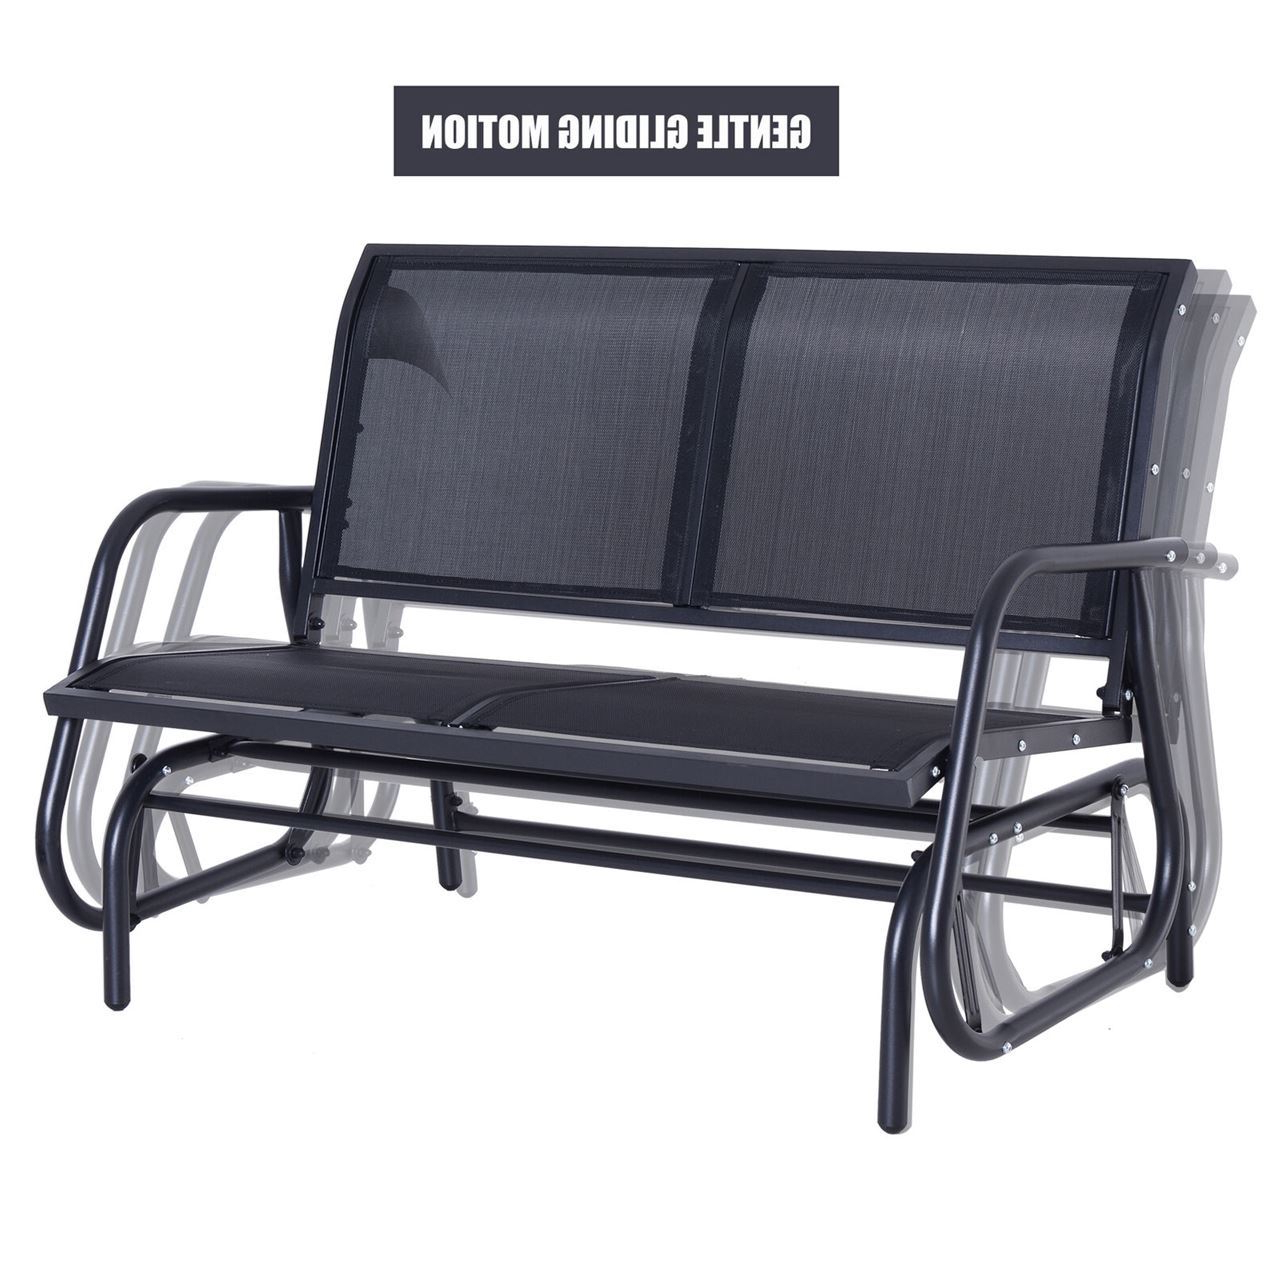 Outdoor Patio Swing Glider Bench Chair – Dark Gray Pertaining To Most Recently Released Outdoor Patio Swing Glider Bench Chairs (View 12 of 25)